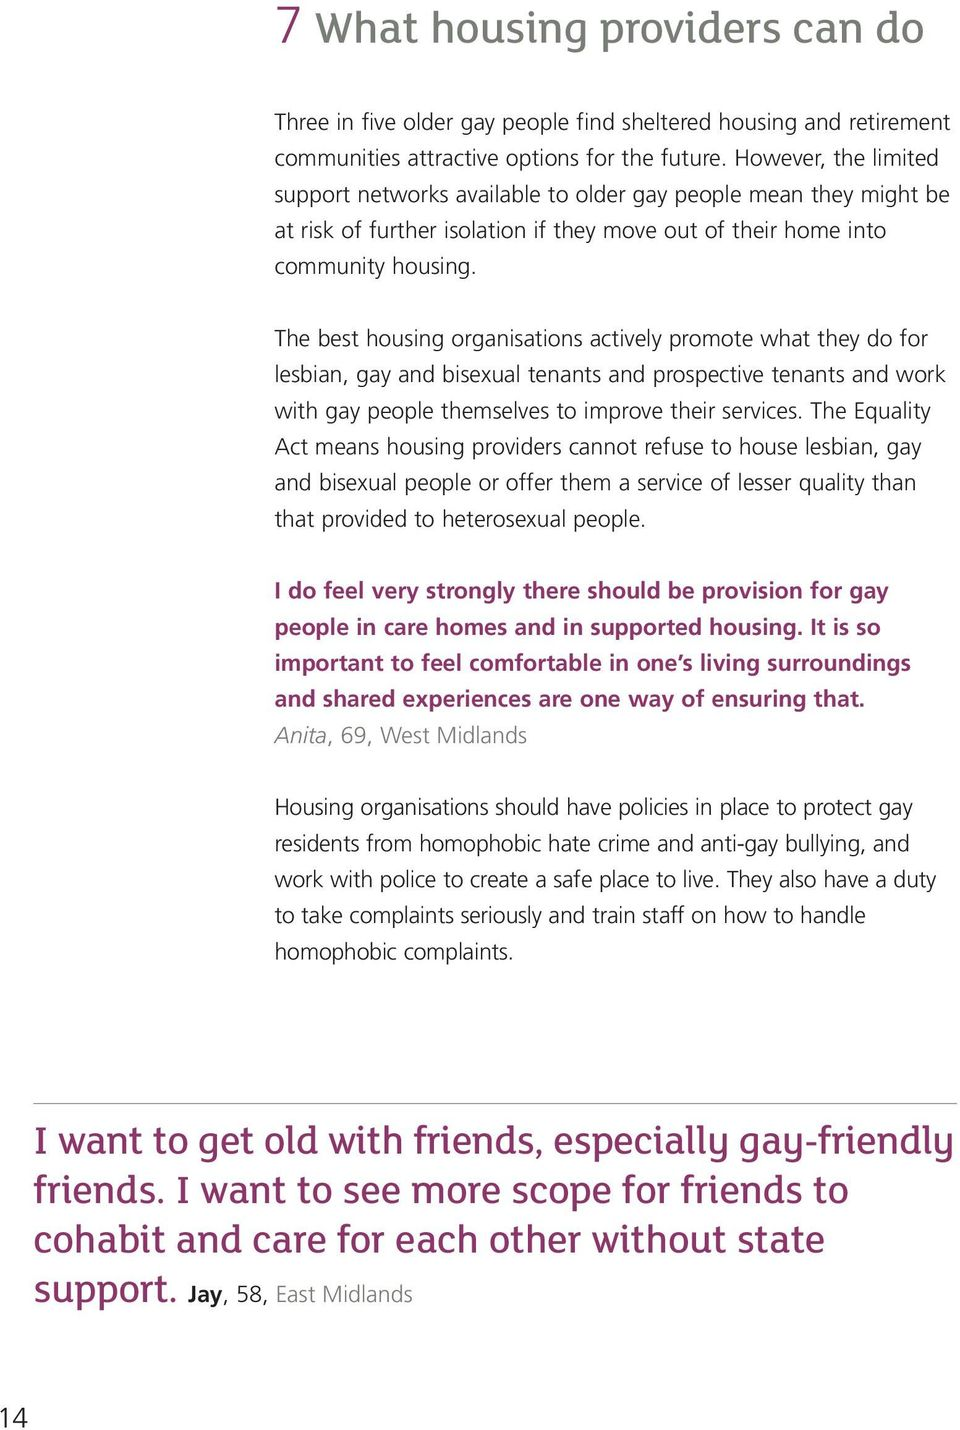 The best housing organisations actively promote what they do for lesbian, gay and bisexual tenants and prospective tenants and work with gay people themselves to improve their services.